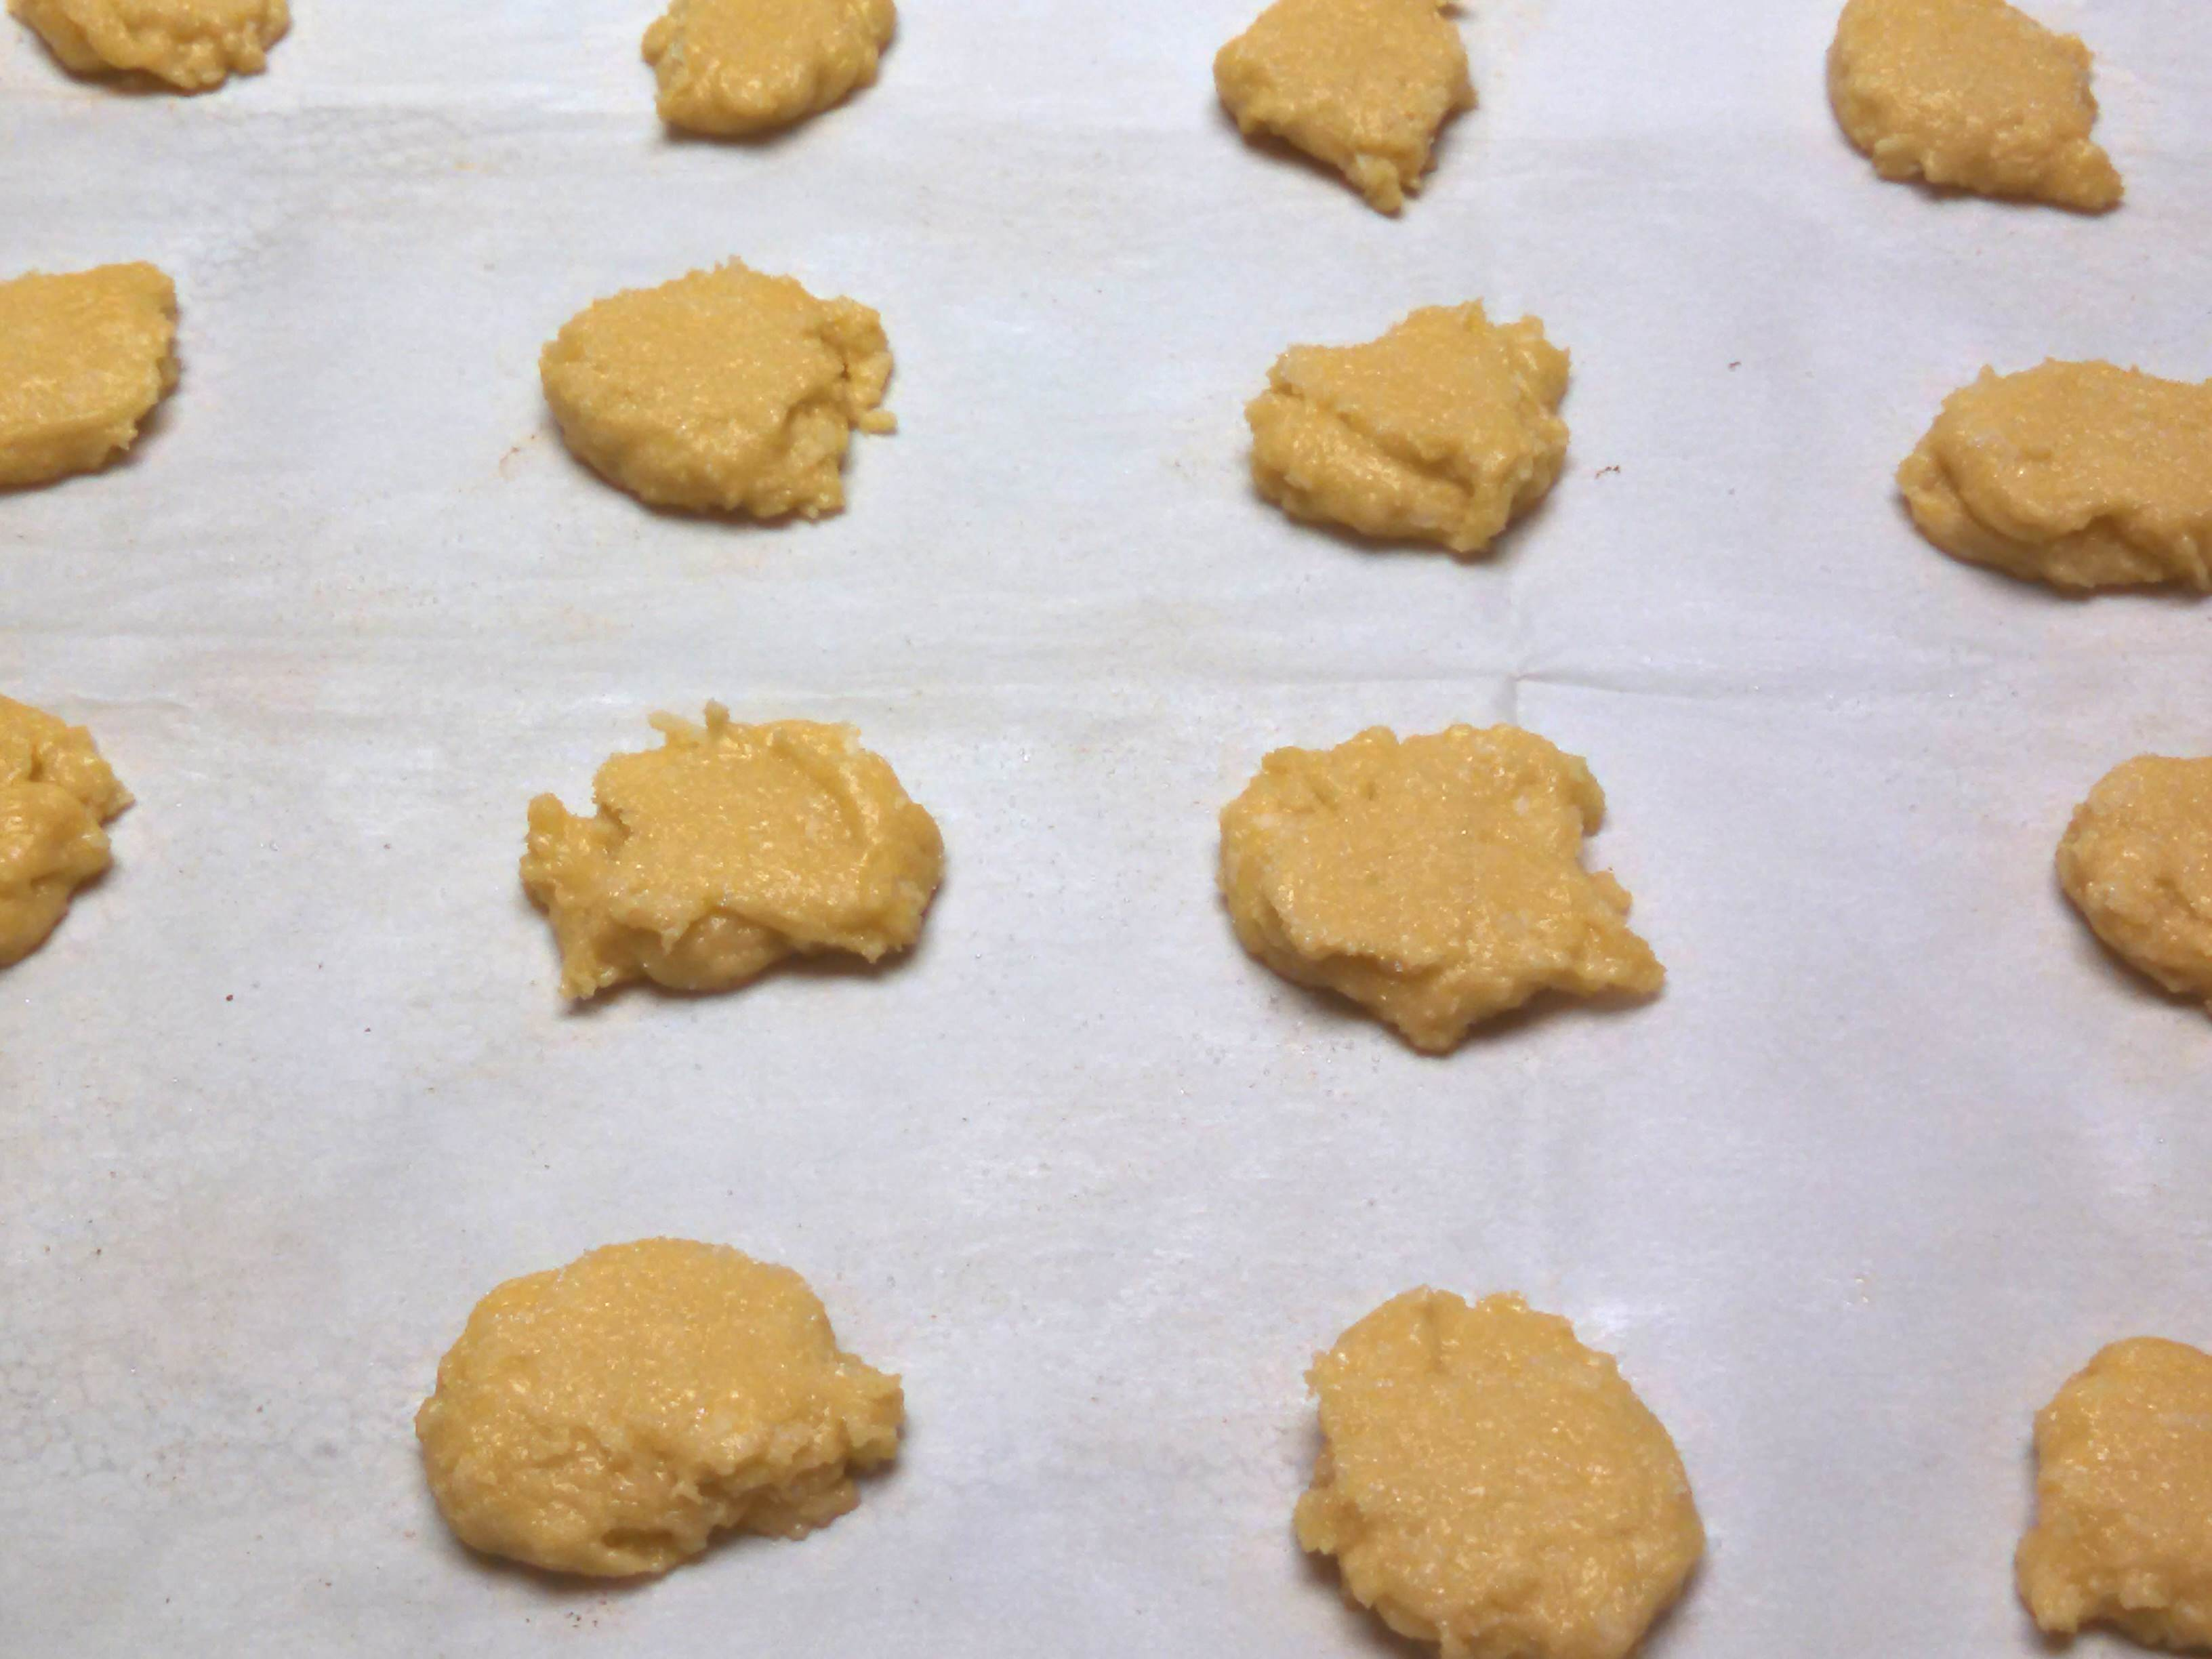 Oven ready Olive Oil Coconut Sugar Cookies